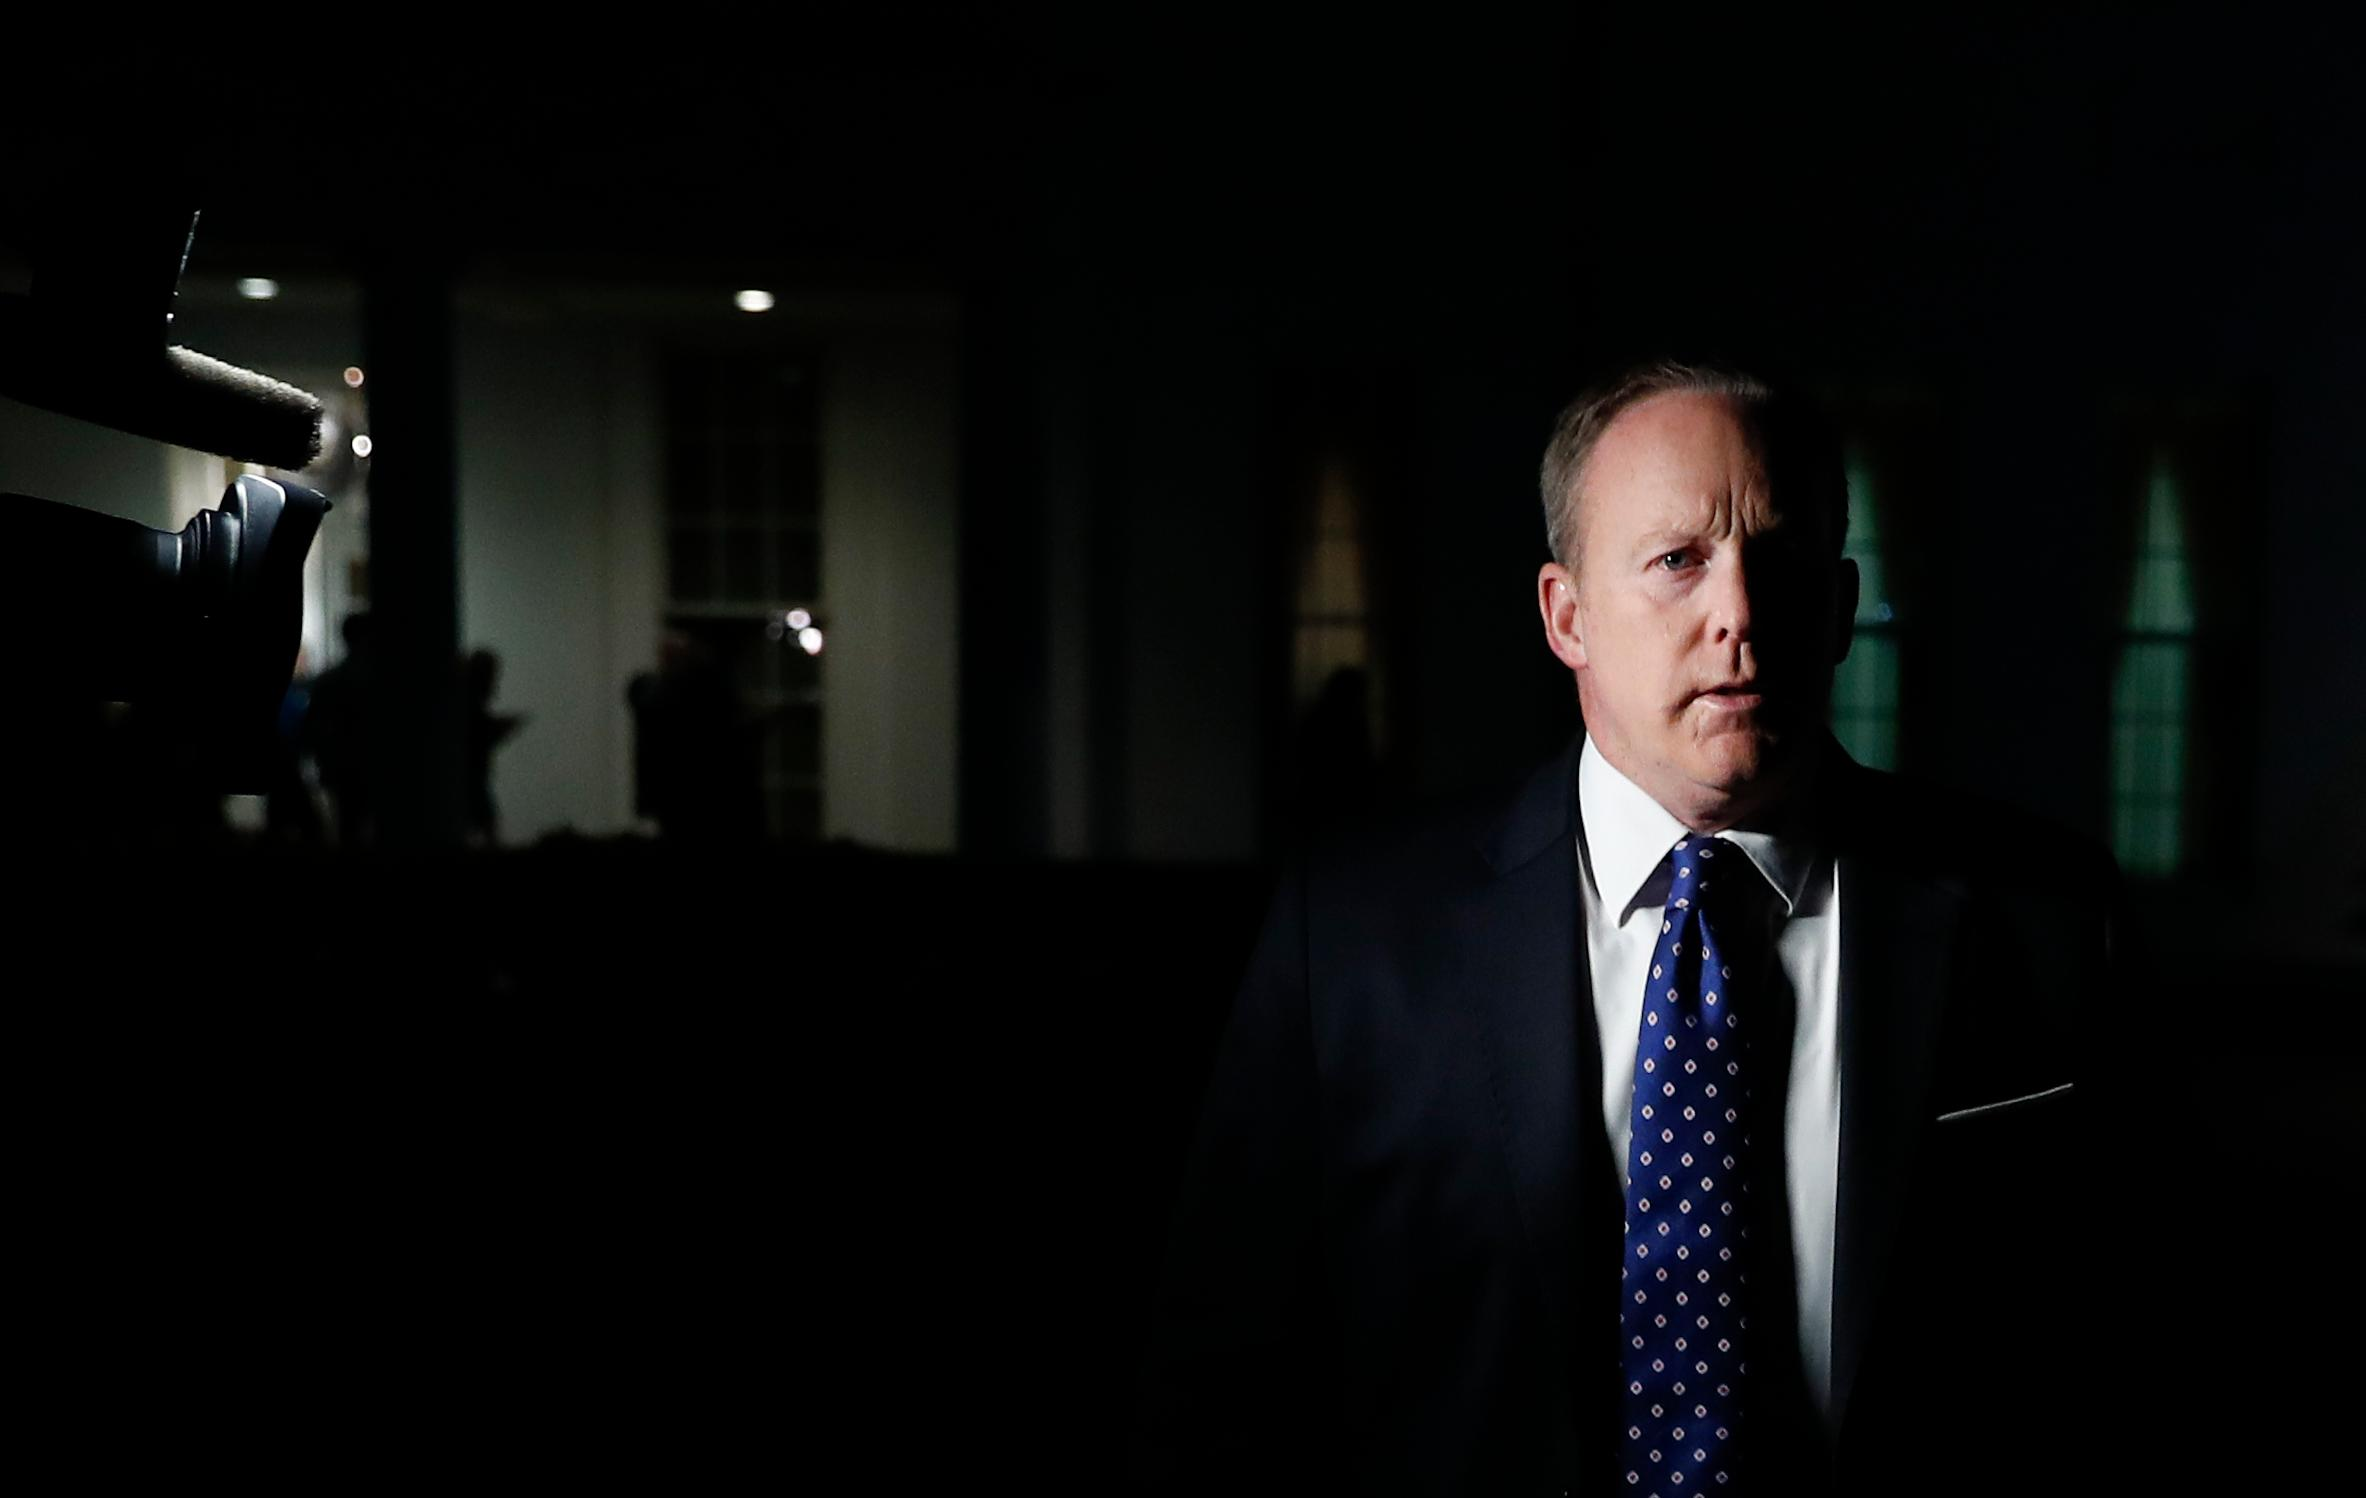 White House press secretary Sean Spicer walks from the West Wing of White House, in Washington, Tuesday, May 9, 2017, to speak to reporters. President Donald Trump abruptly fired FBI Director Comey on May 9, 2017, ousting the nation's top law enforcement official in the midst of an investigation into whether Trump's campaign had ties to Russia's election meddling. (AP Photo/Carolyn Kaster)